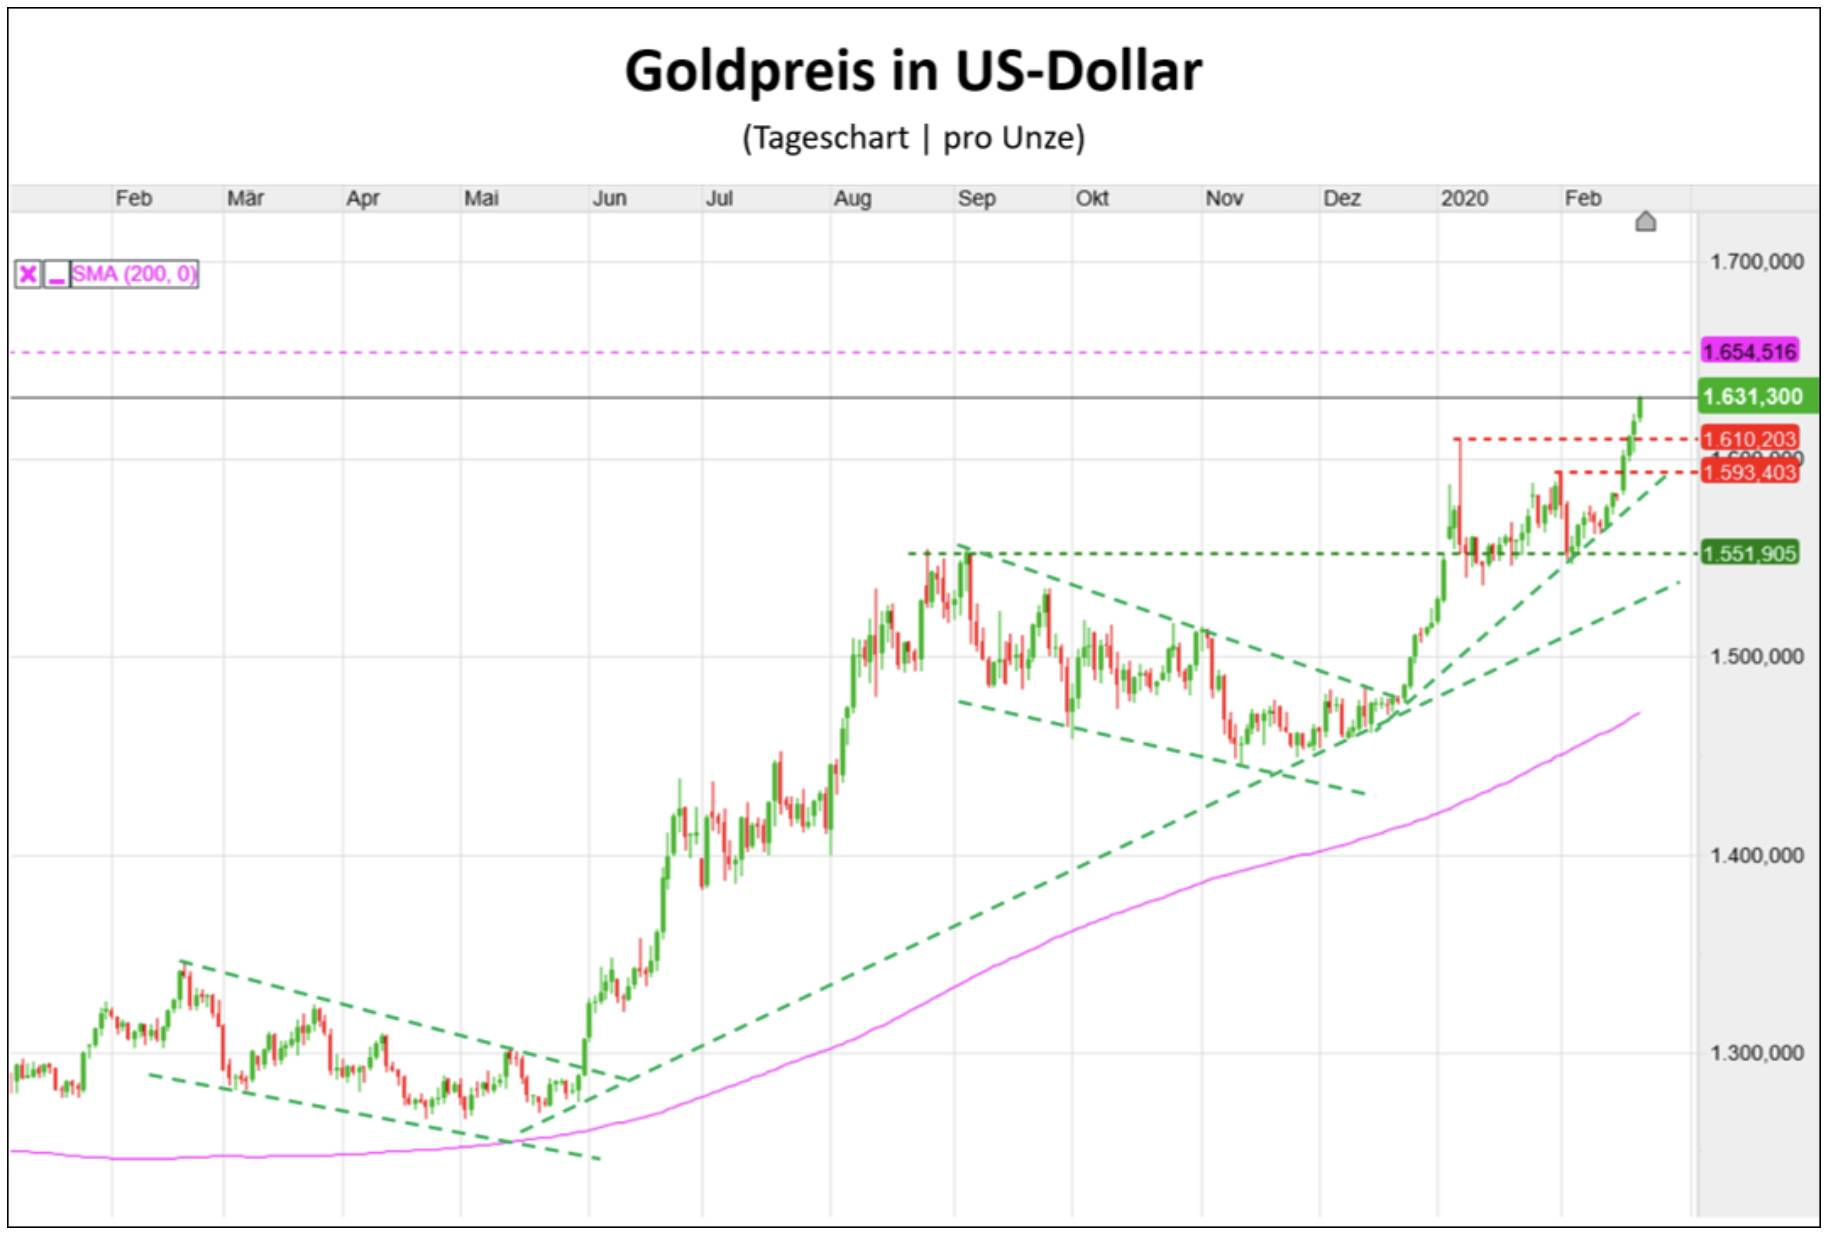 Goldpreis in US-Dollar Chartverlauf